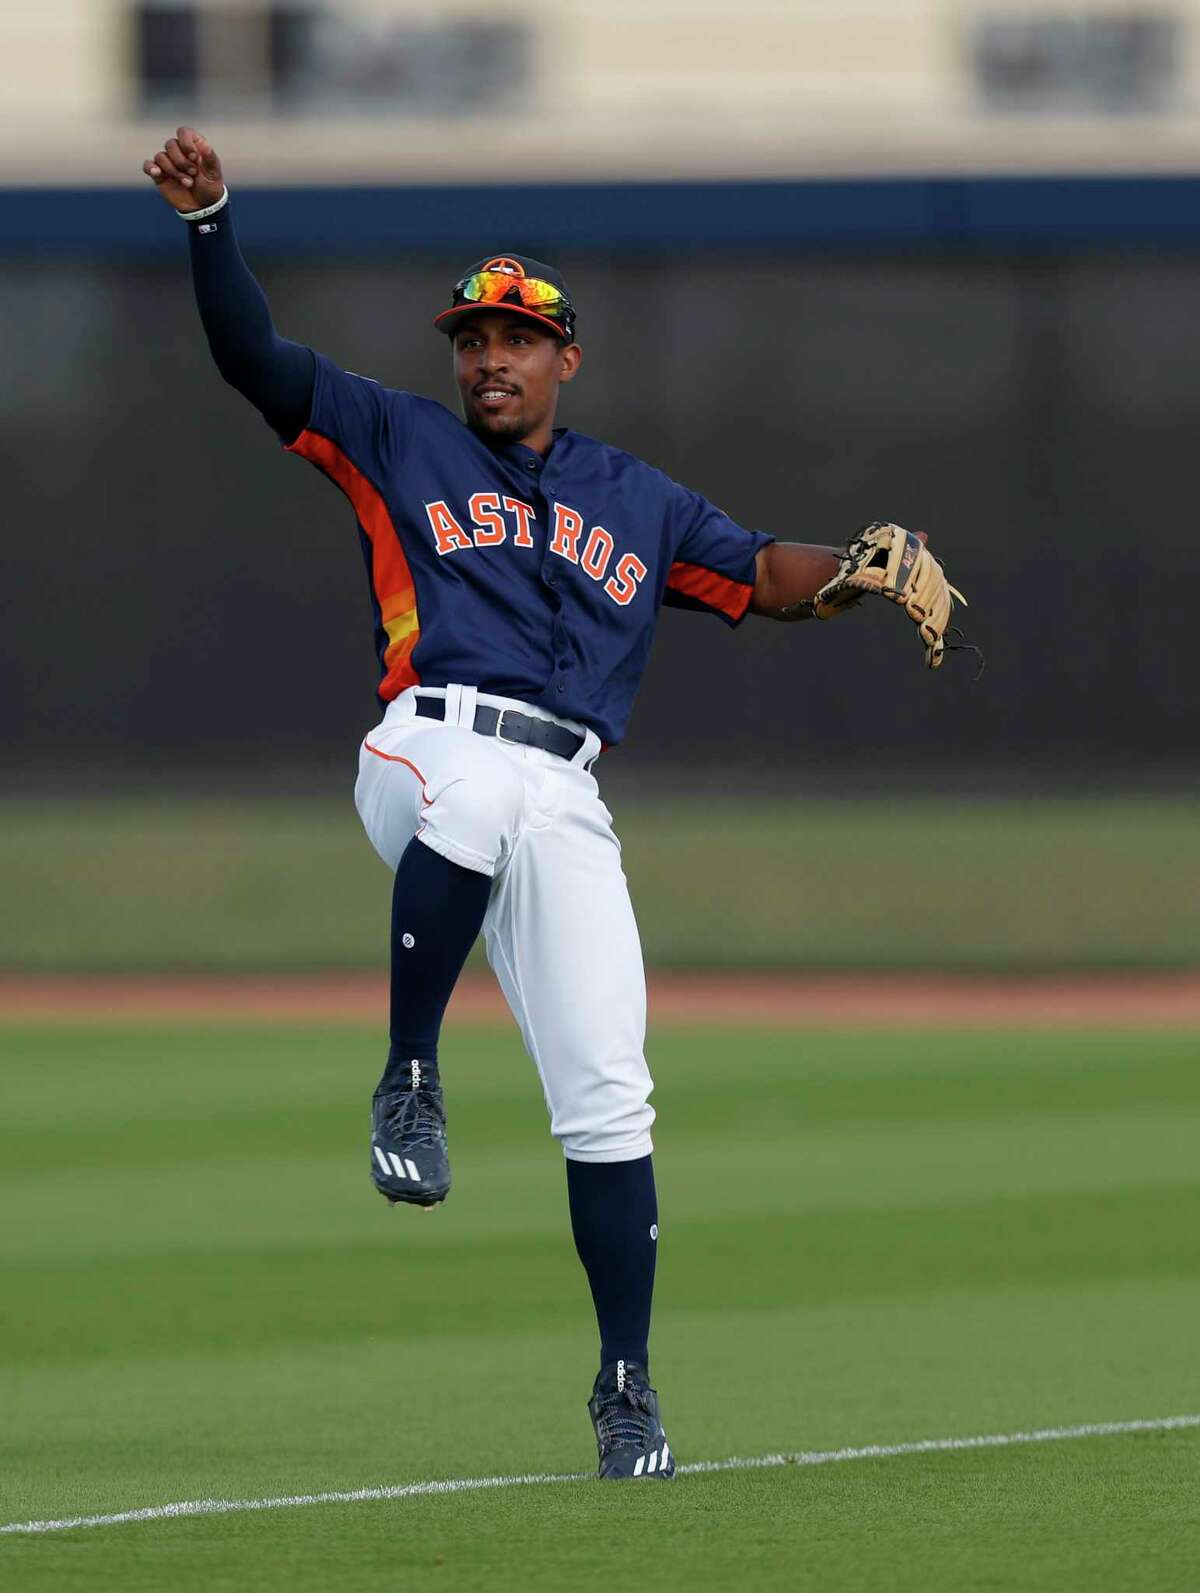 Houston Astros left fielder Tony Kemp (18) watches a ball he threw during a drill at spring training at The Ballpark of the Palm Beaches, in West Palm Beach, Florida, Thursday, February 23, 2017.